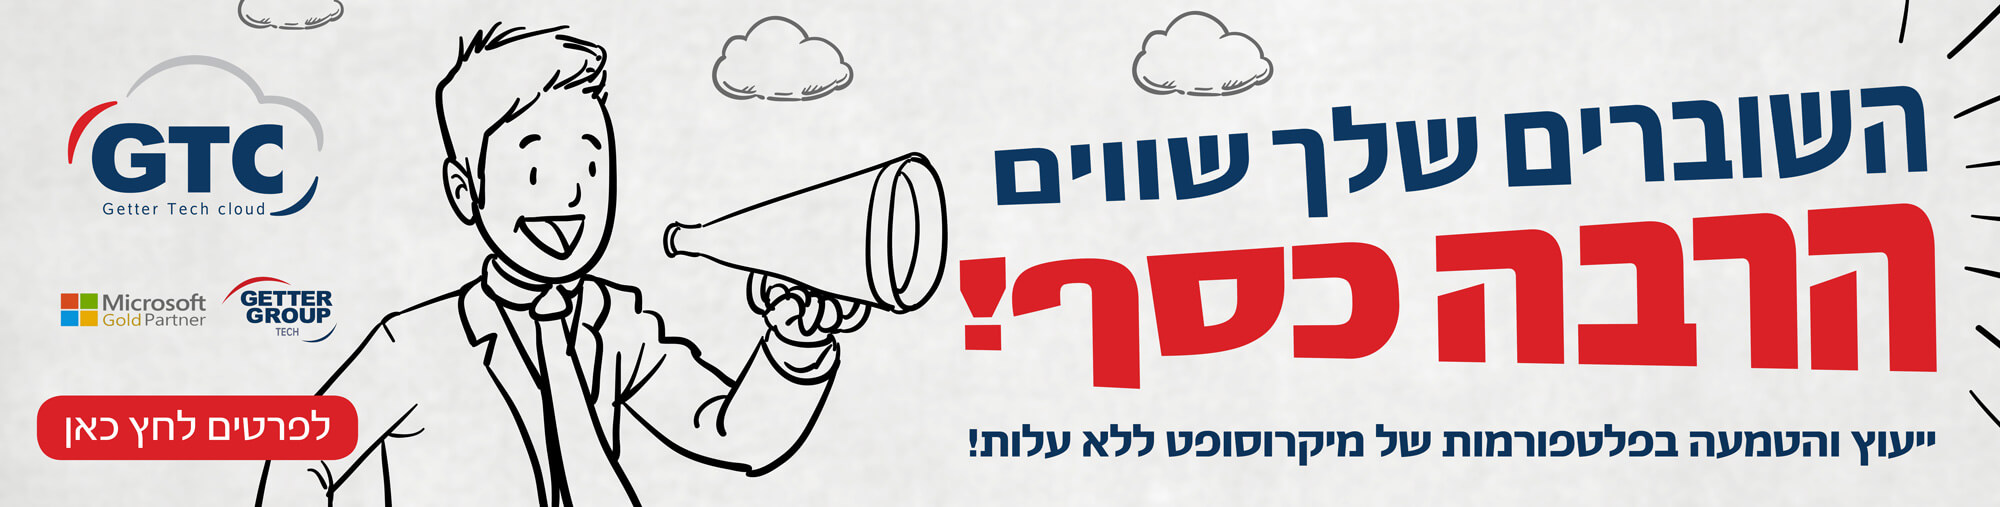 21 GTC 9 banner 2000x507, תוכנת adobe creative cloud